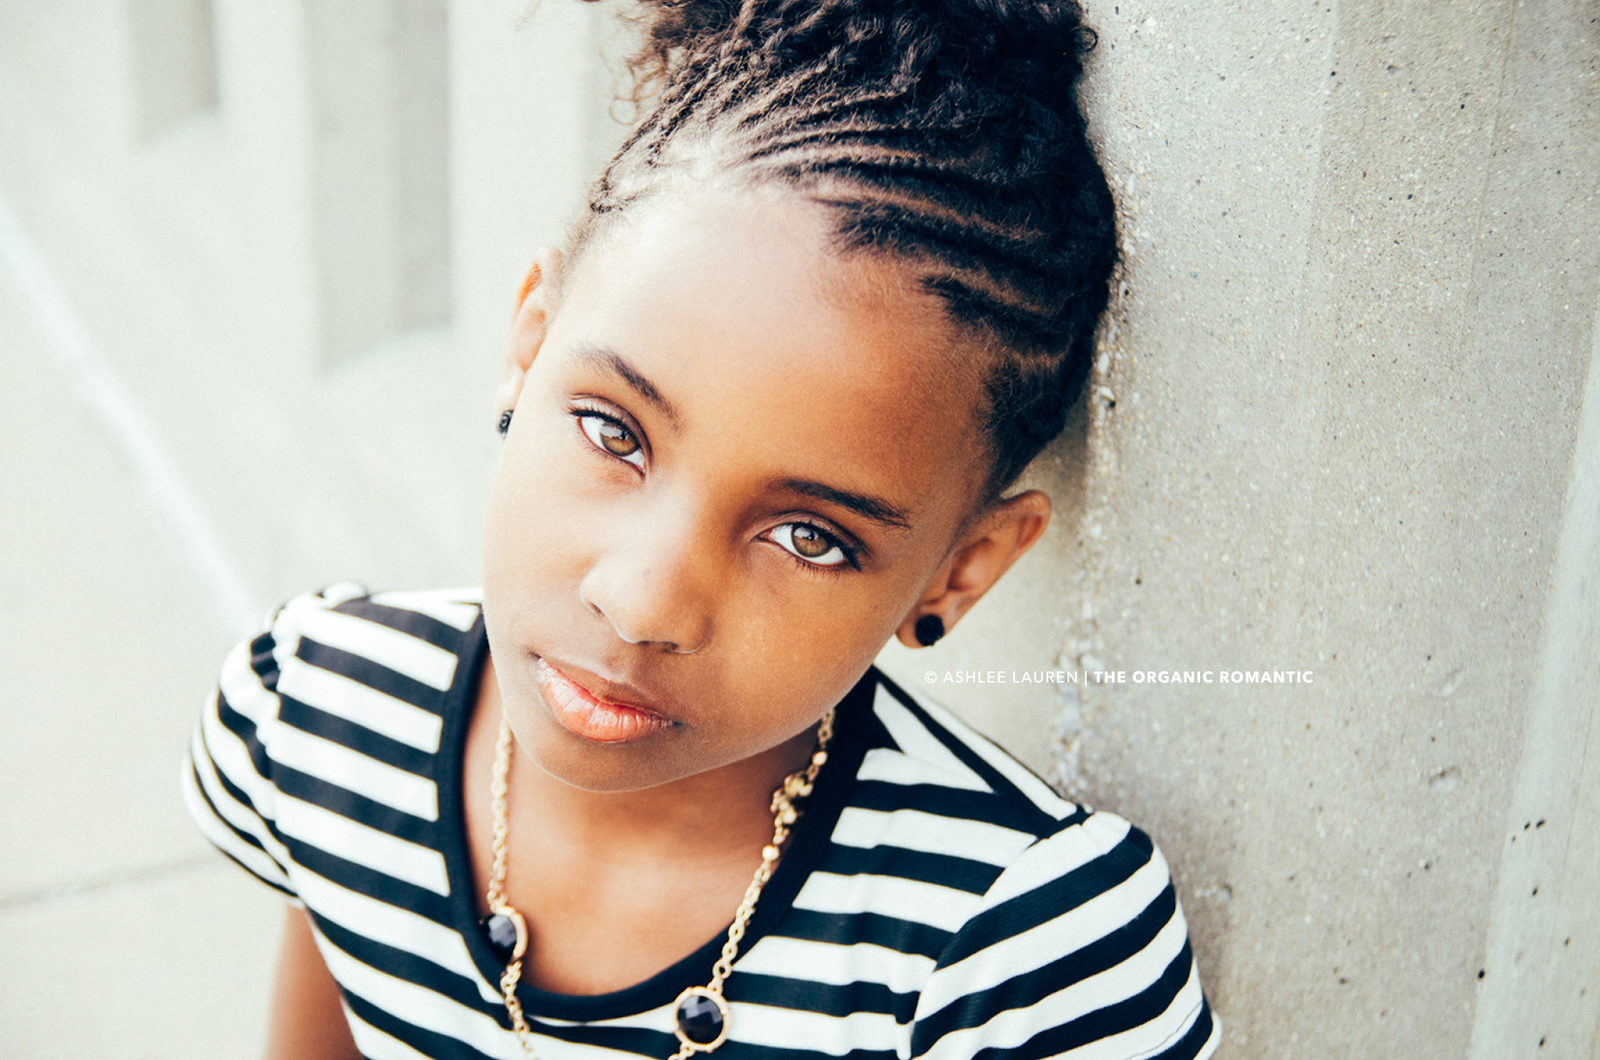 Bright, airy child model photographer in Indianapolis shows you what your child would look like in a luxury editorial magazine. Book today!